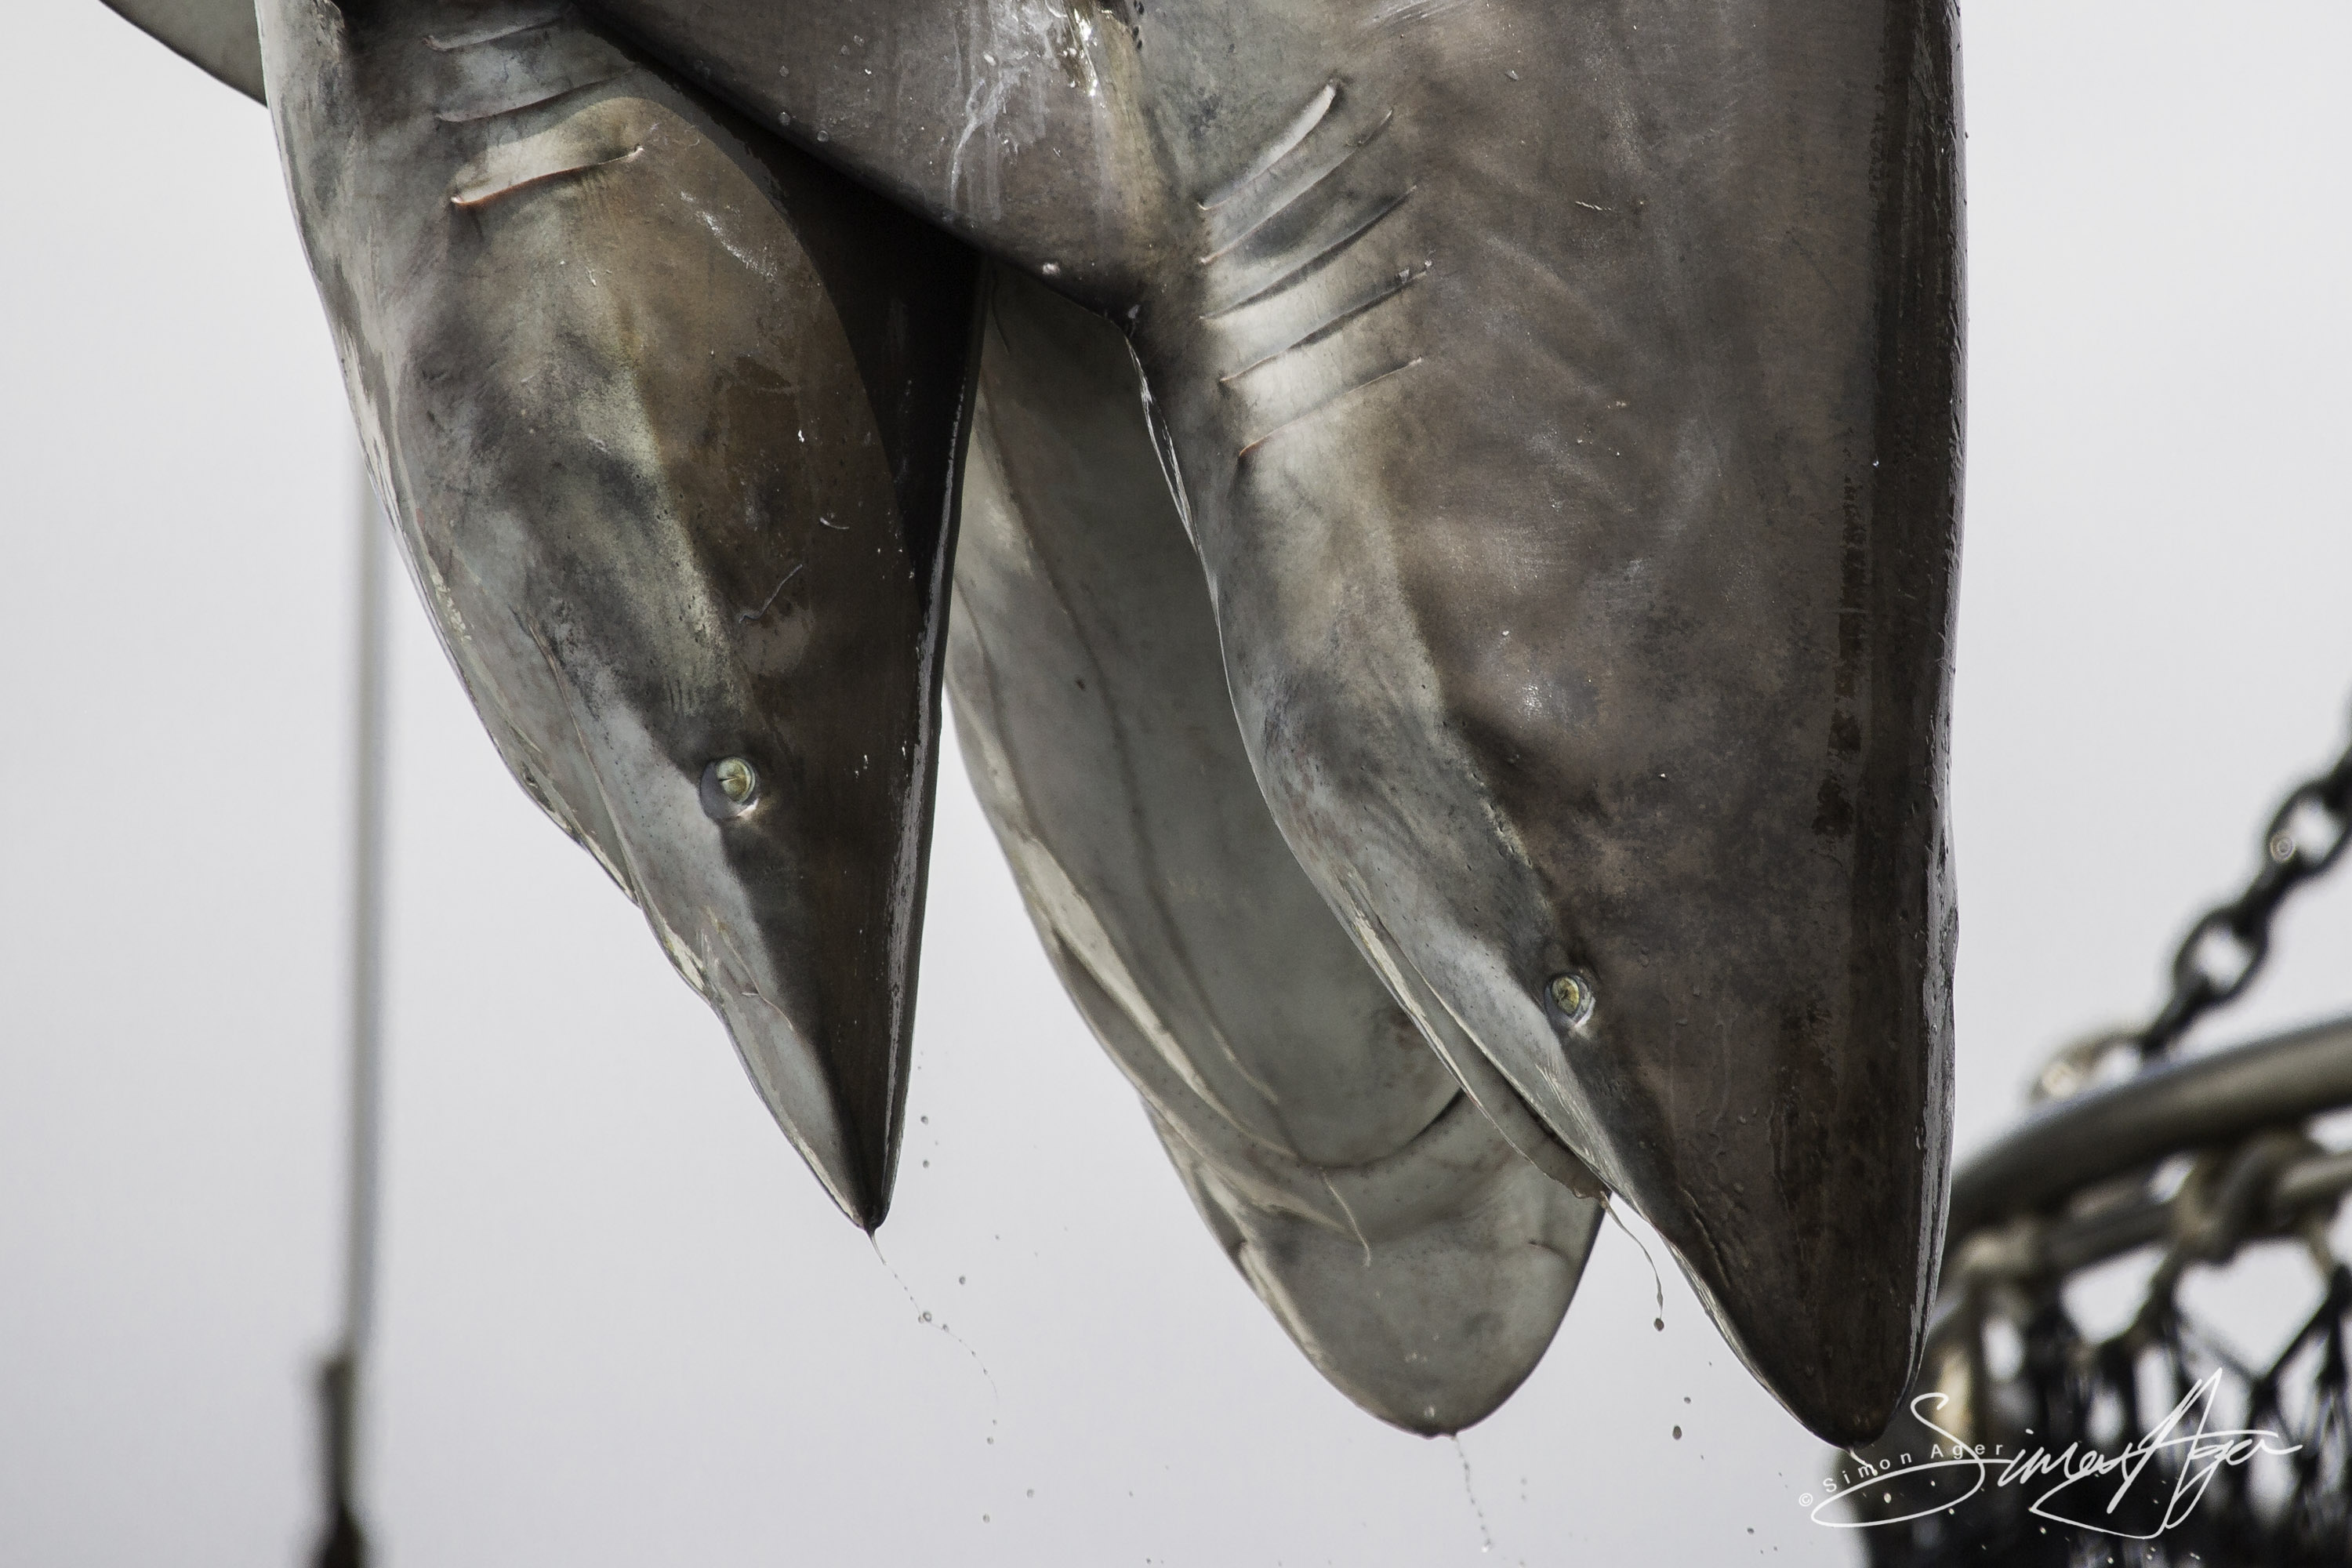 160704-SA-Geuotec-shark-bycatch-dumped-into-the-ocean-7059